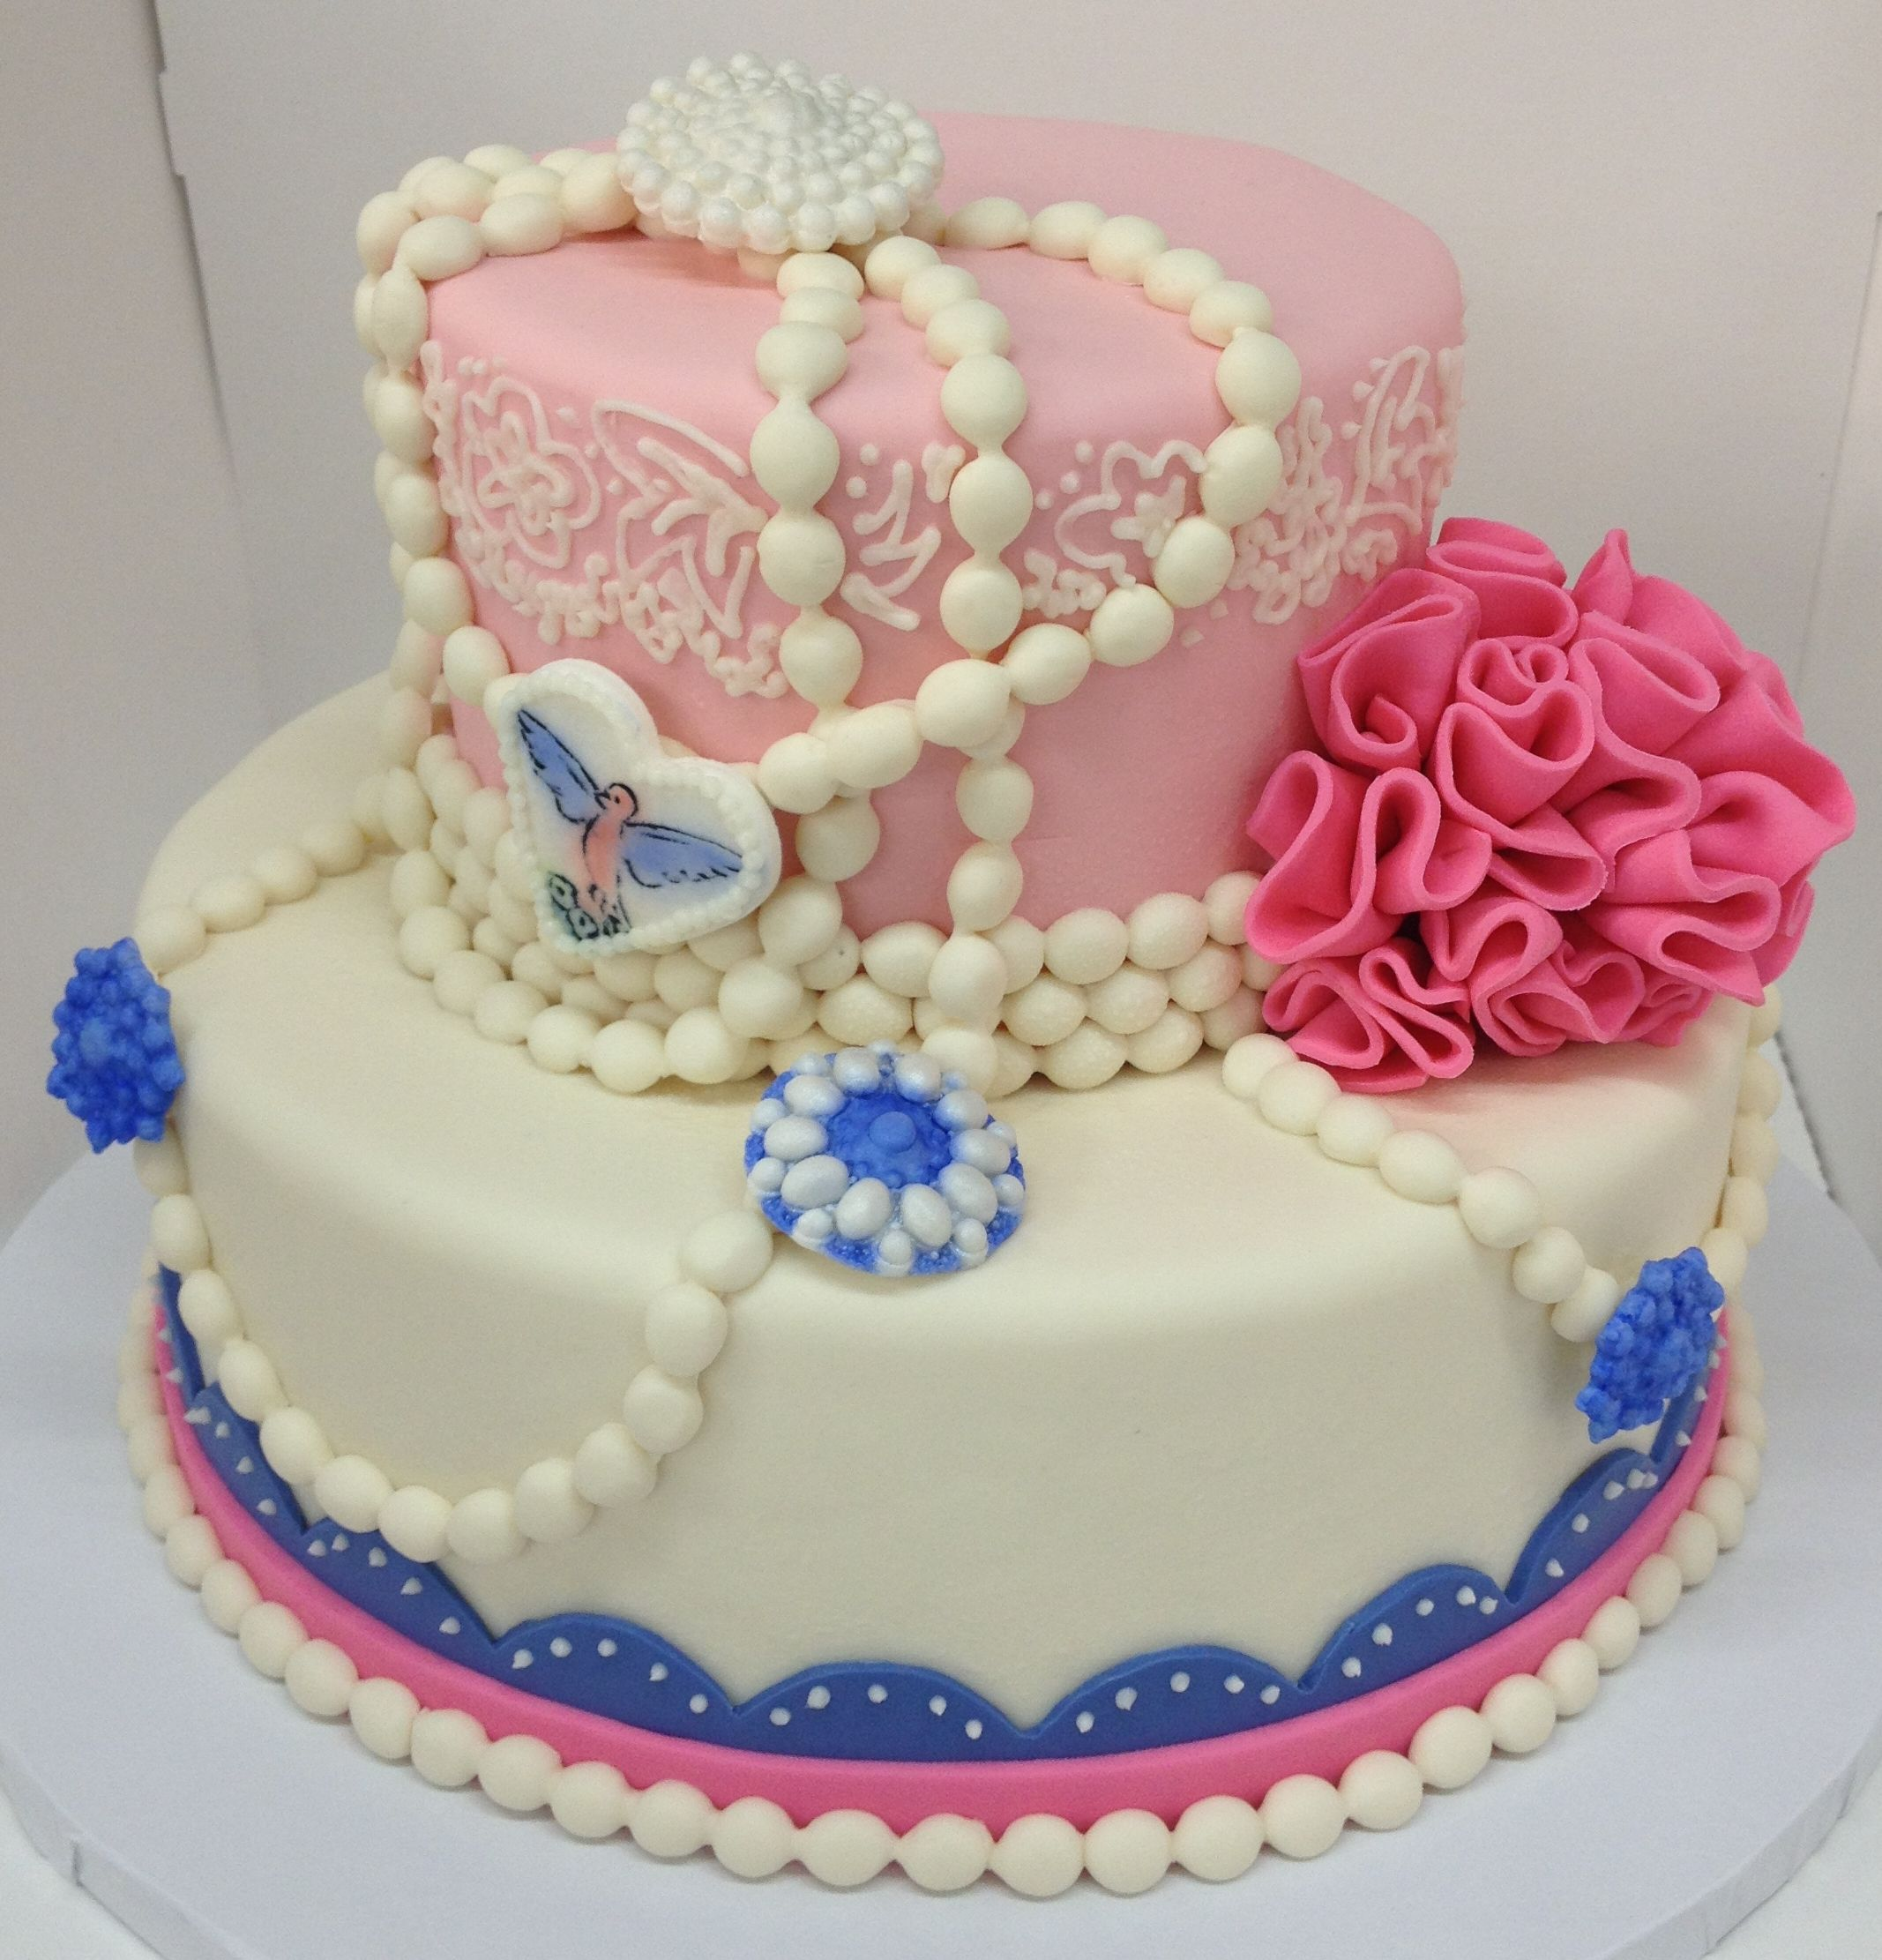 An adorable princess cake perfect for any young lady by 3 Women and an Oven in Overland Park, KS  http://3womendesserts.com/